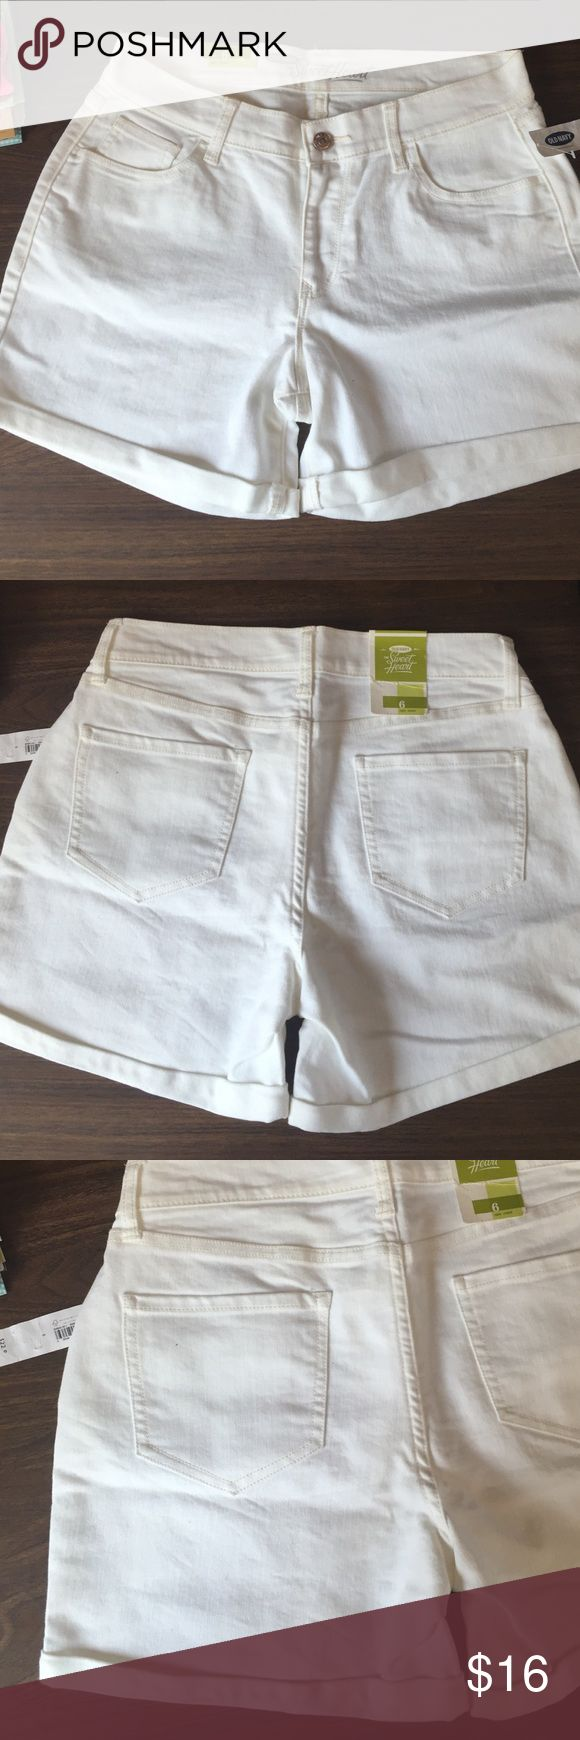 "Old navy white the sweetheart denim shorts new! 6 Old navy white ""the sweetheart"" stretch denim shorts, sits at waist, cuffed, brand new with tags, women's size 6 measures 32"" waist, 36"" hips, 13"" side length, 4"" inseam Old Navy Shorts"